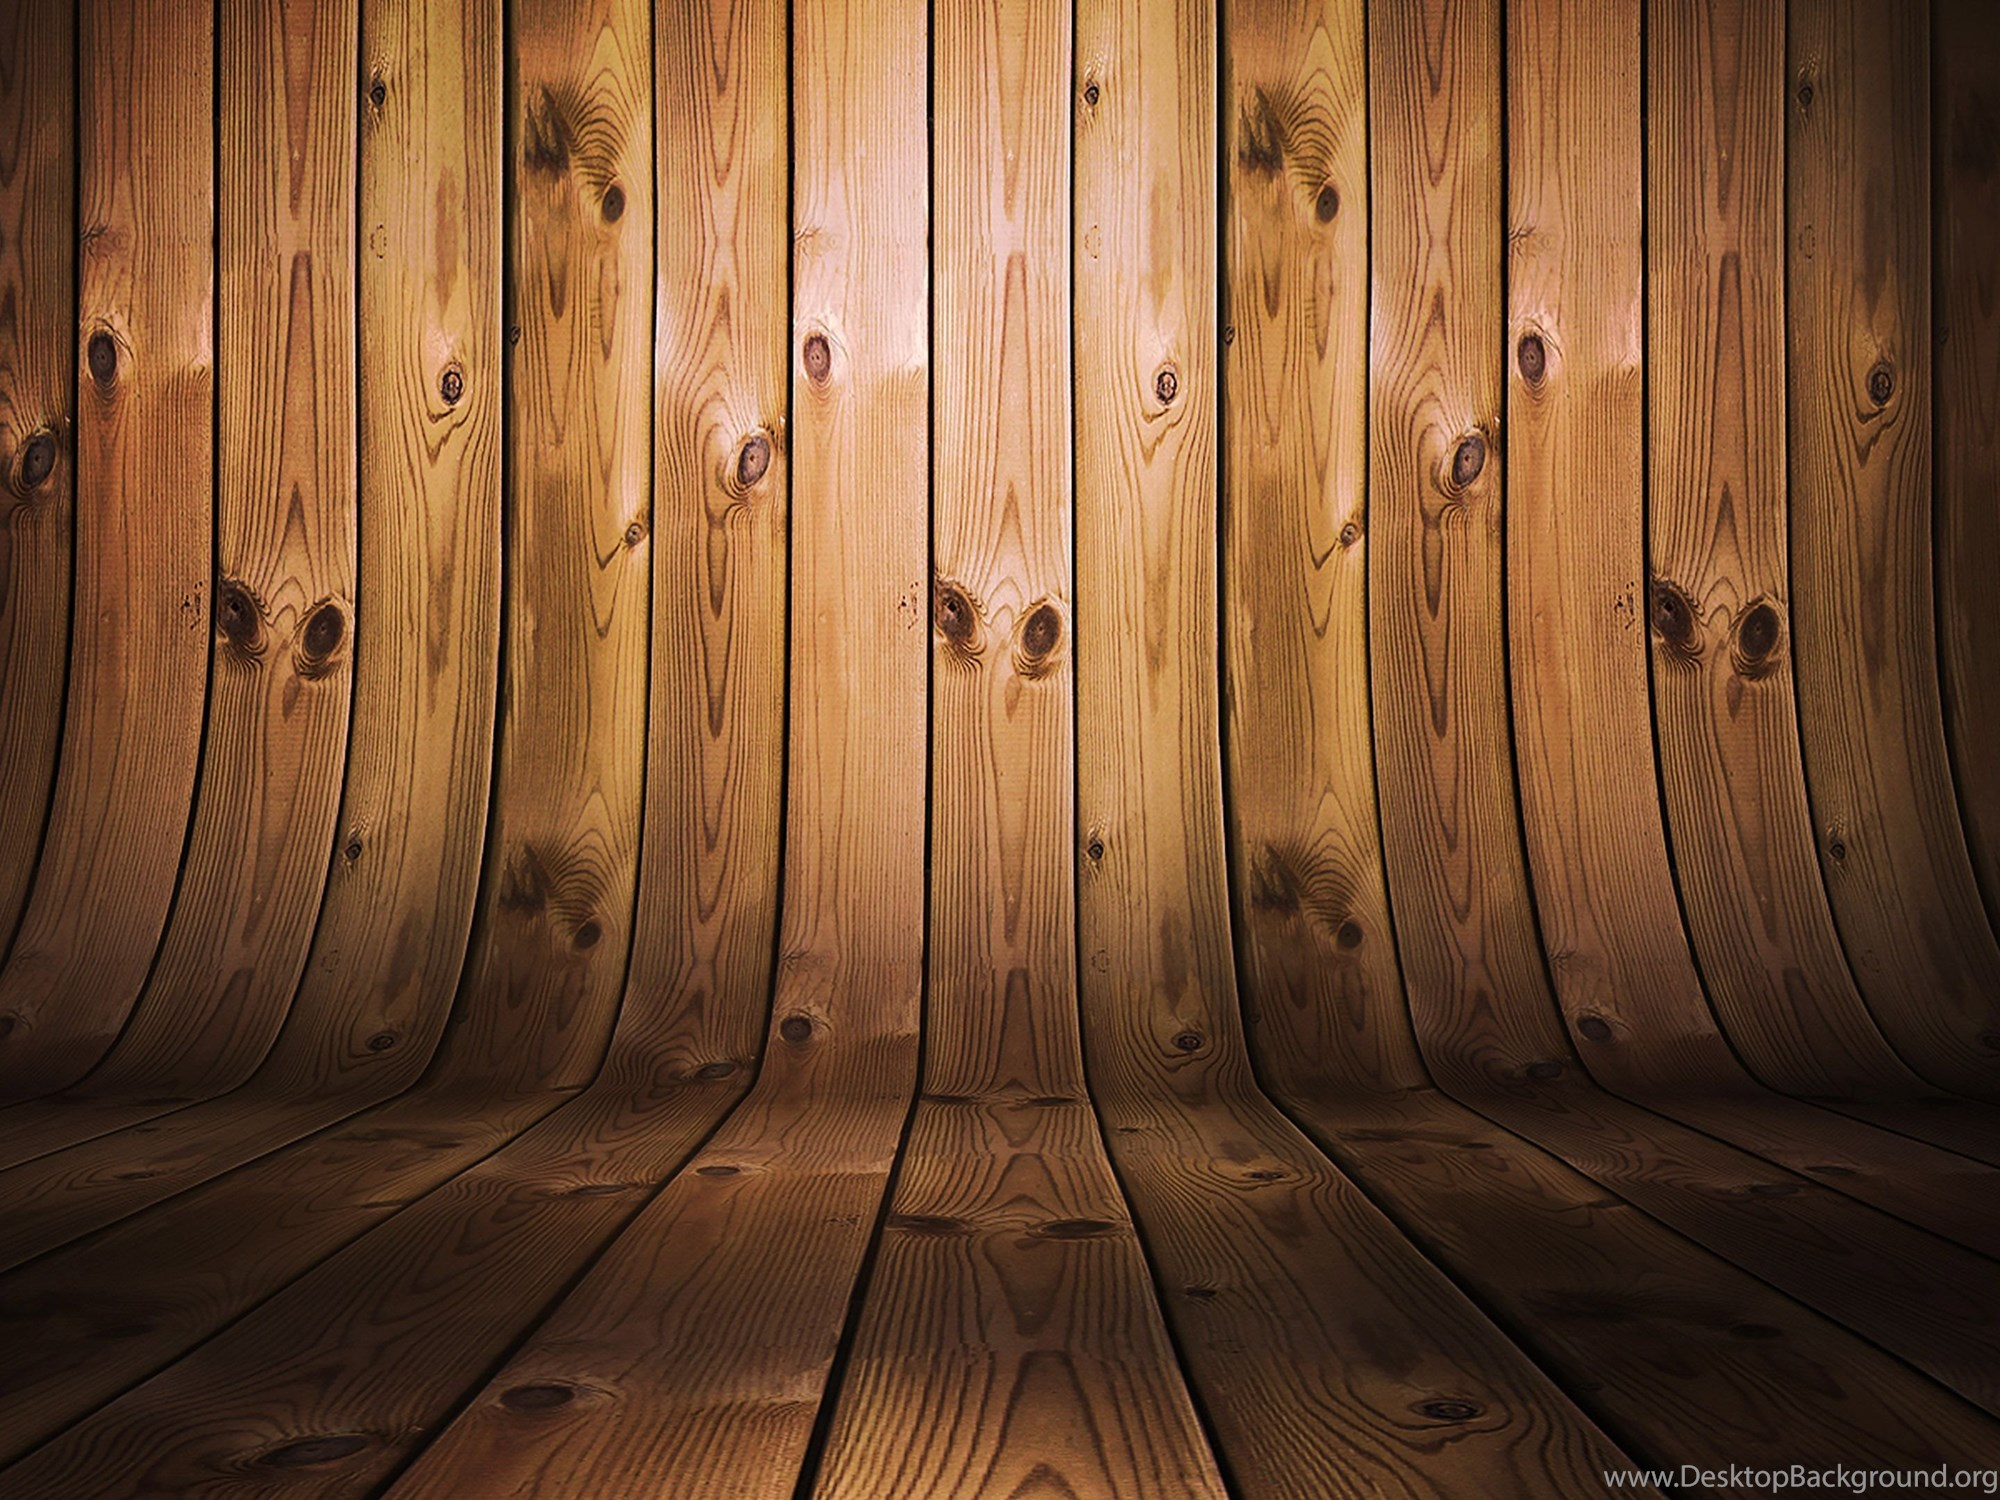 Wallpapers Wood Plank Smooth Texture Oak Wall Stock .2 5159x3297 ...